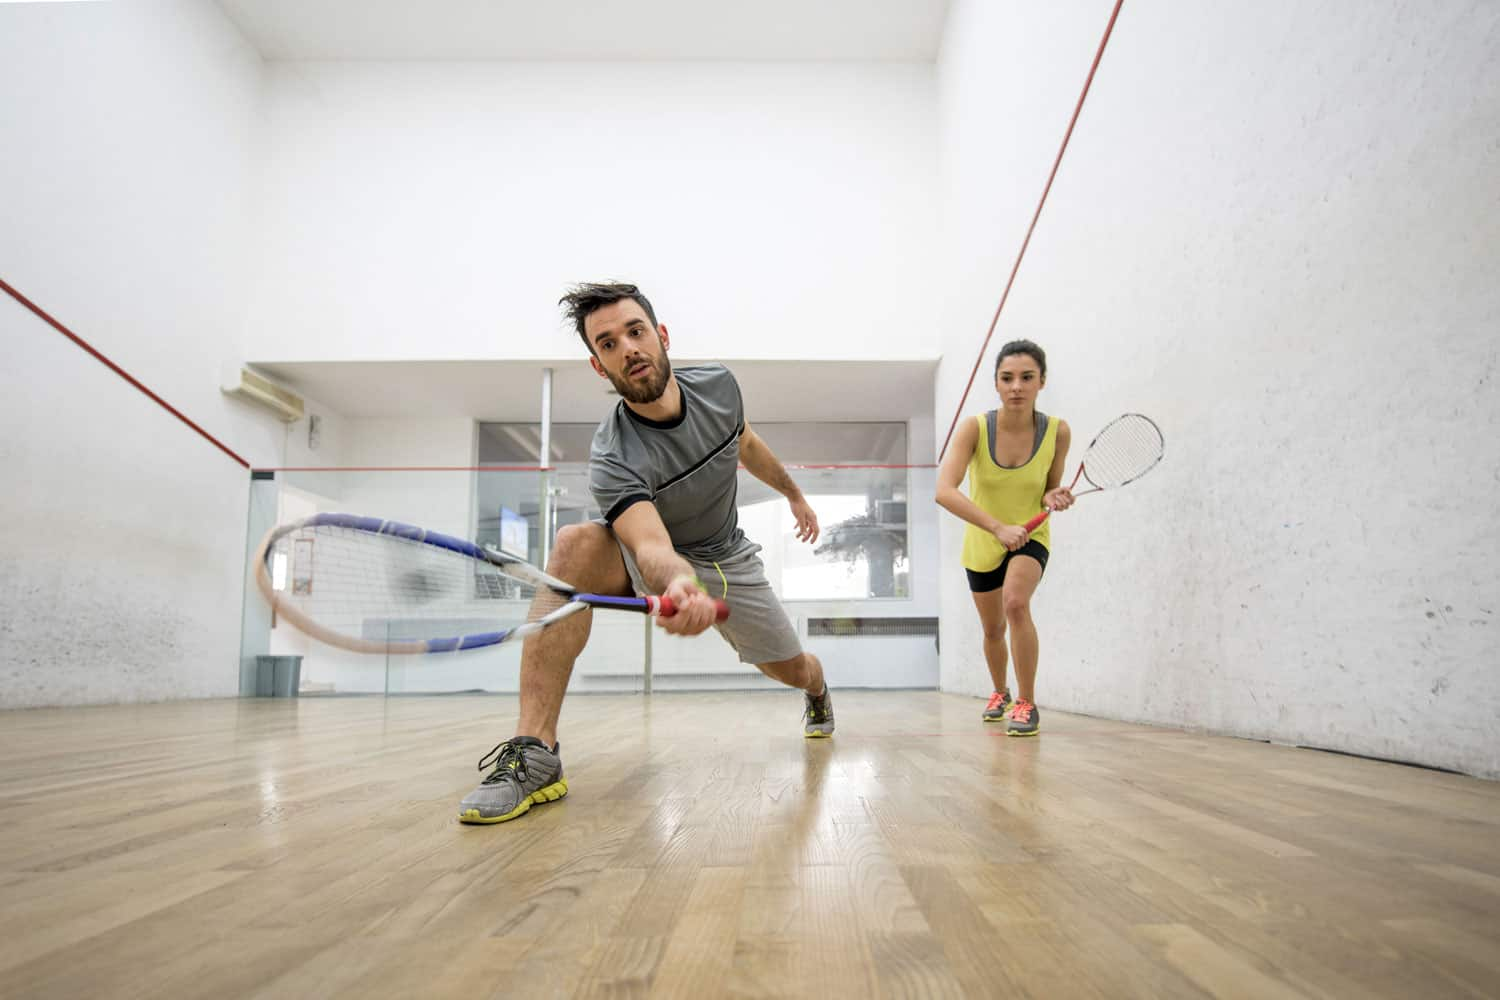 A couple playing in a squash court